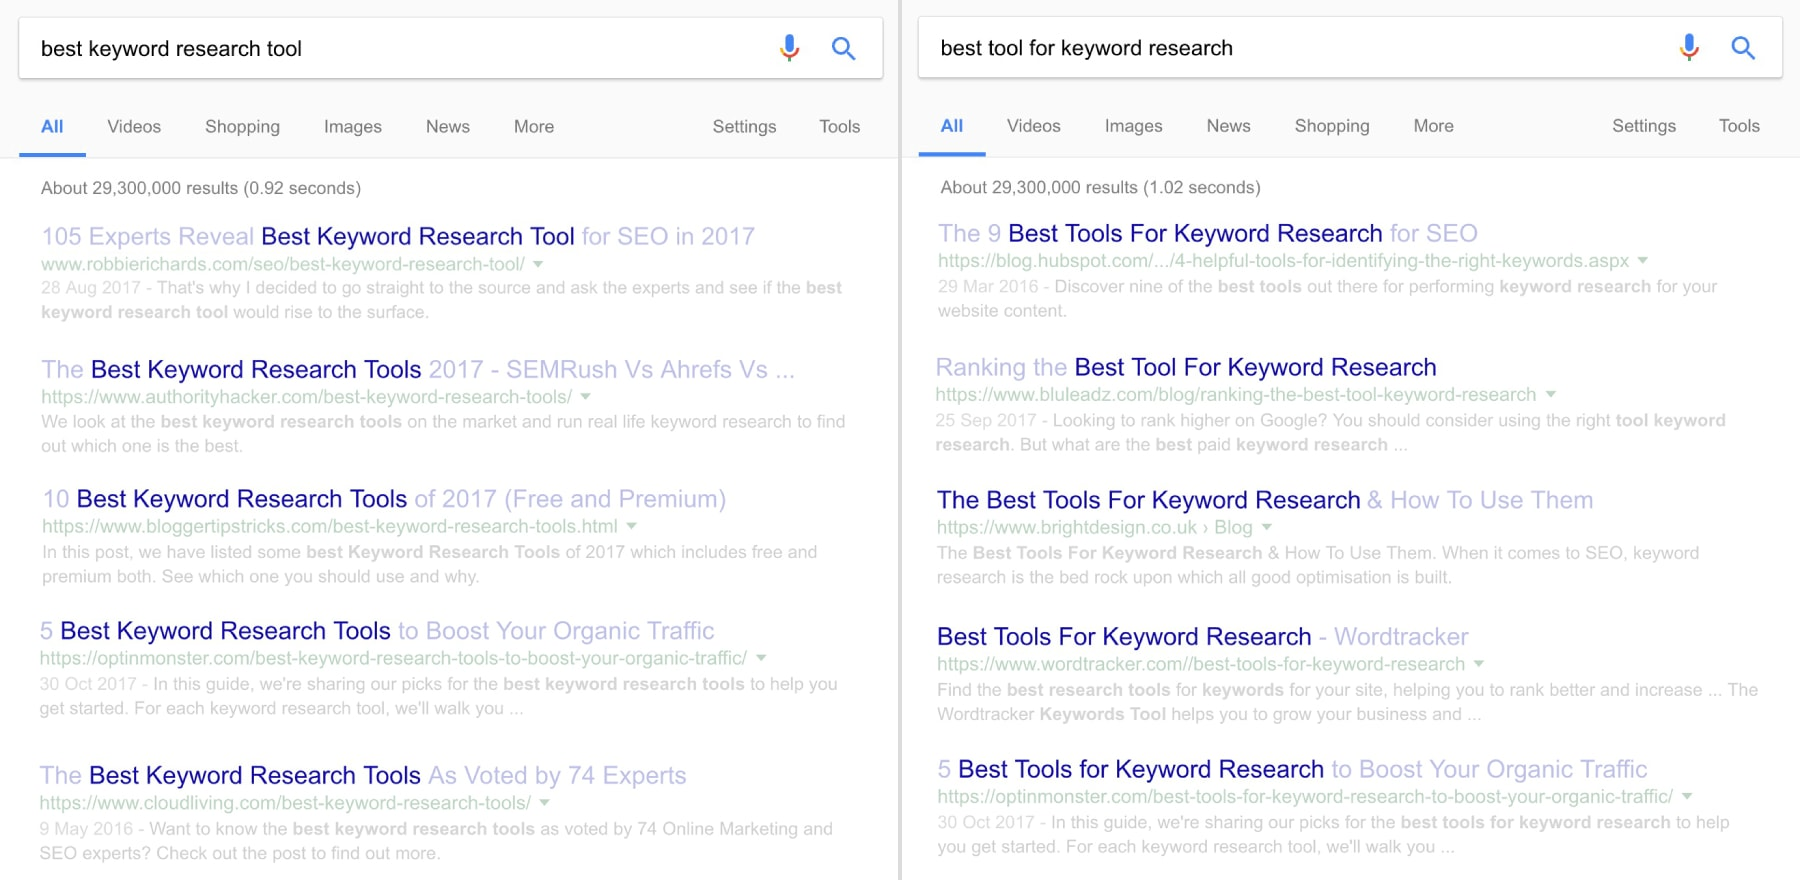 3_2_best-keyword-research-tool